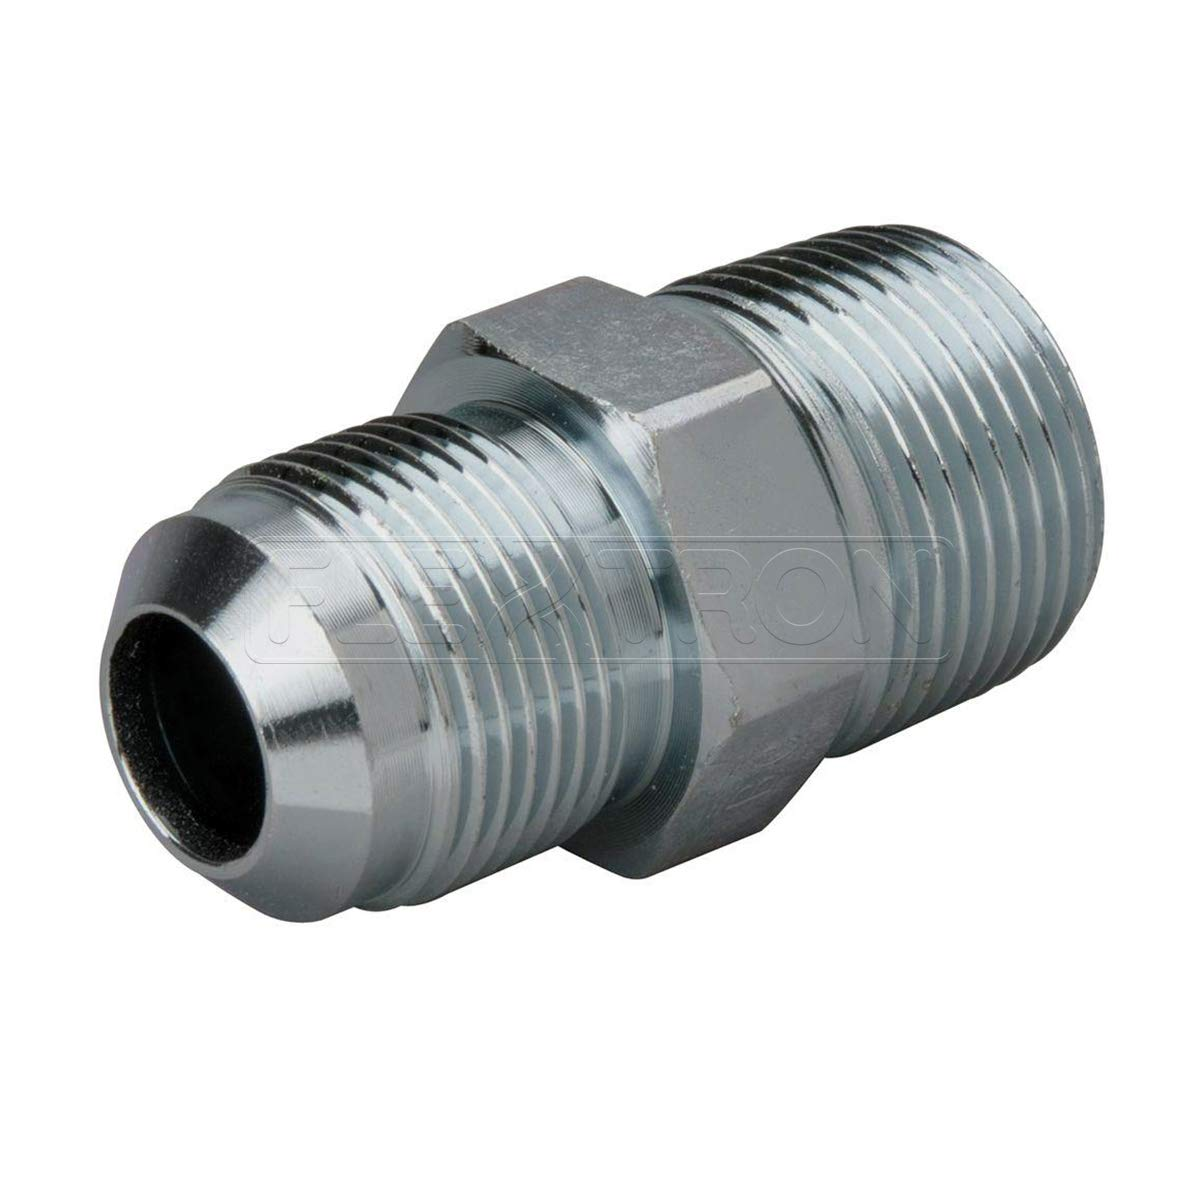 Flextron FTGF-58M34 Gas Connector Adpater Fitting with 5/8 Inch Outer Diameter Flare Thread x 3/4 Inch MIP (TAPPED 1/2 Inch), Uncoated Stainless Steel, for Range & Furnace Gas Connectors